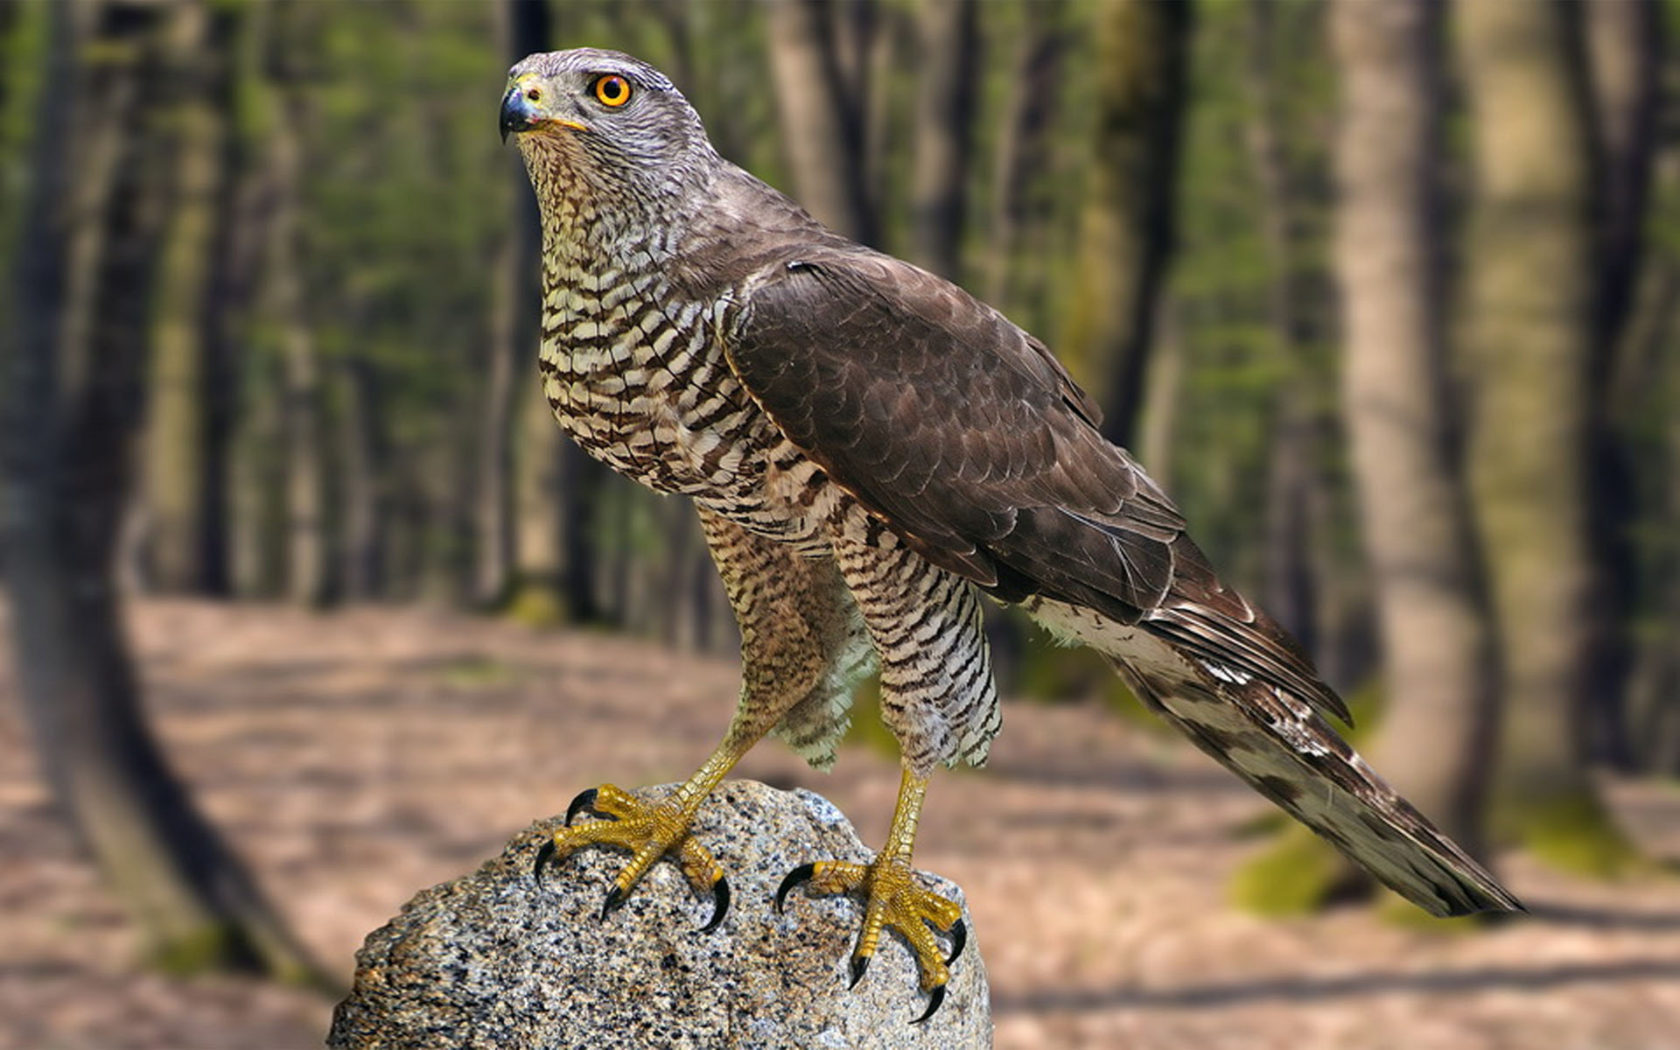 Desktop Wallpaper Cute Girl Northern Goshawk Bird Accipiter Gentilis Hd Wallpapers For